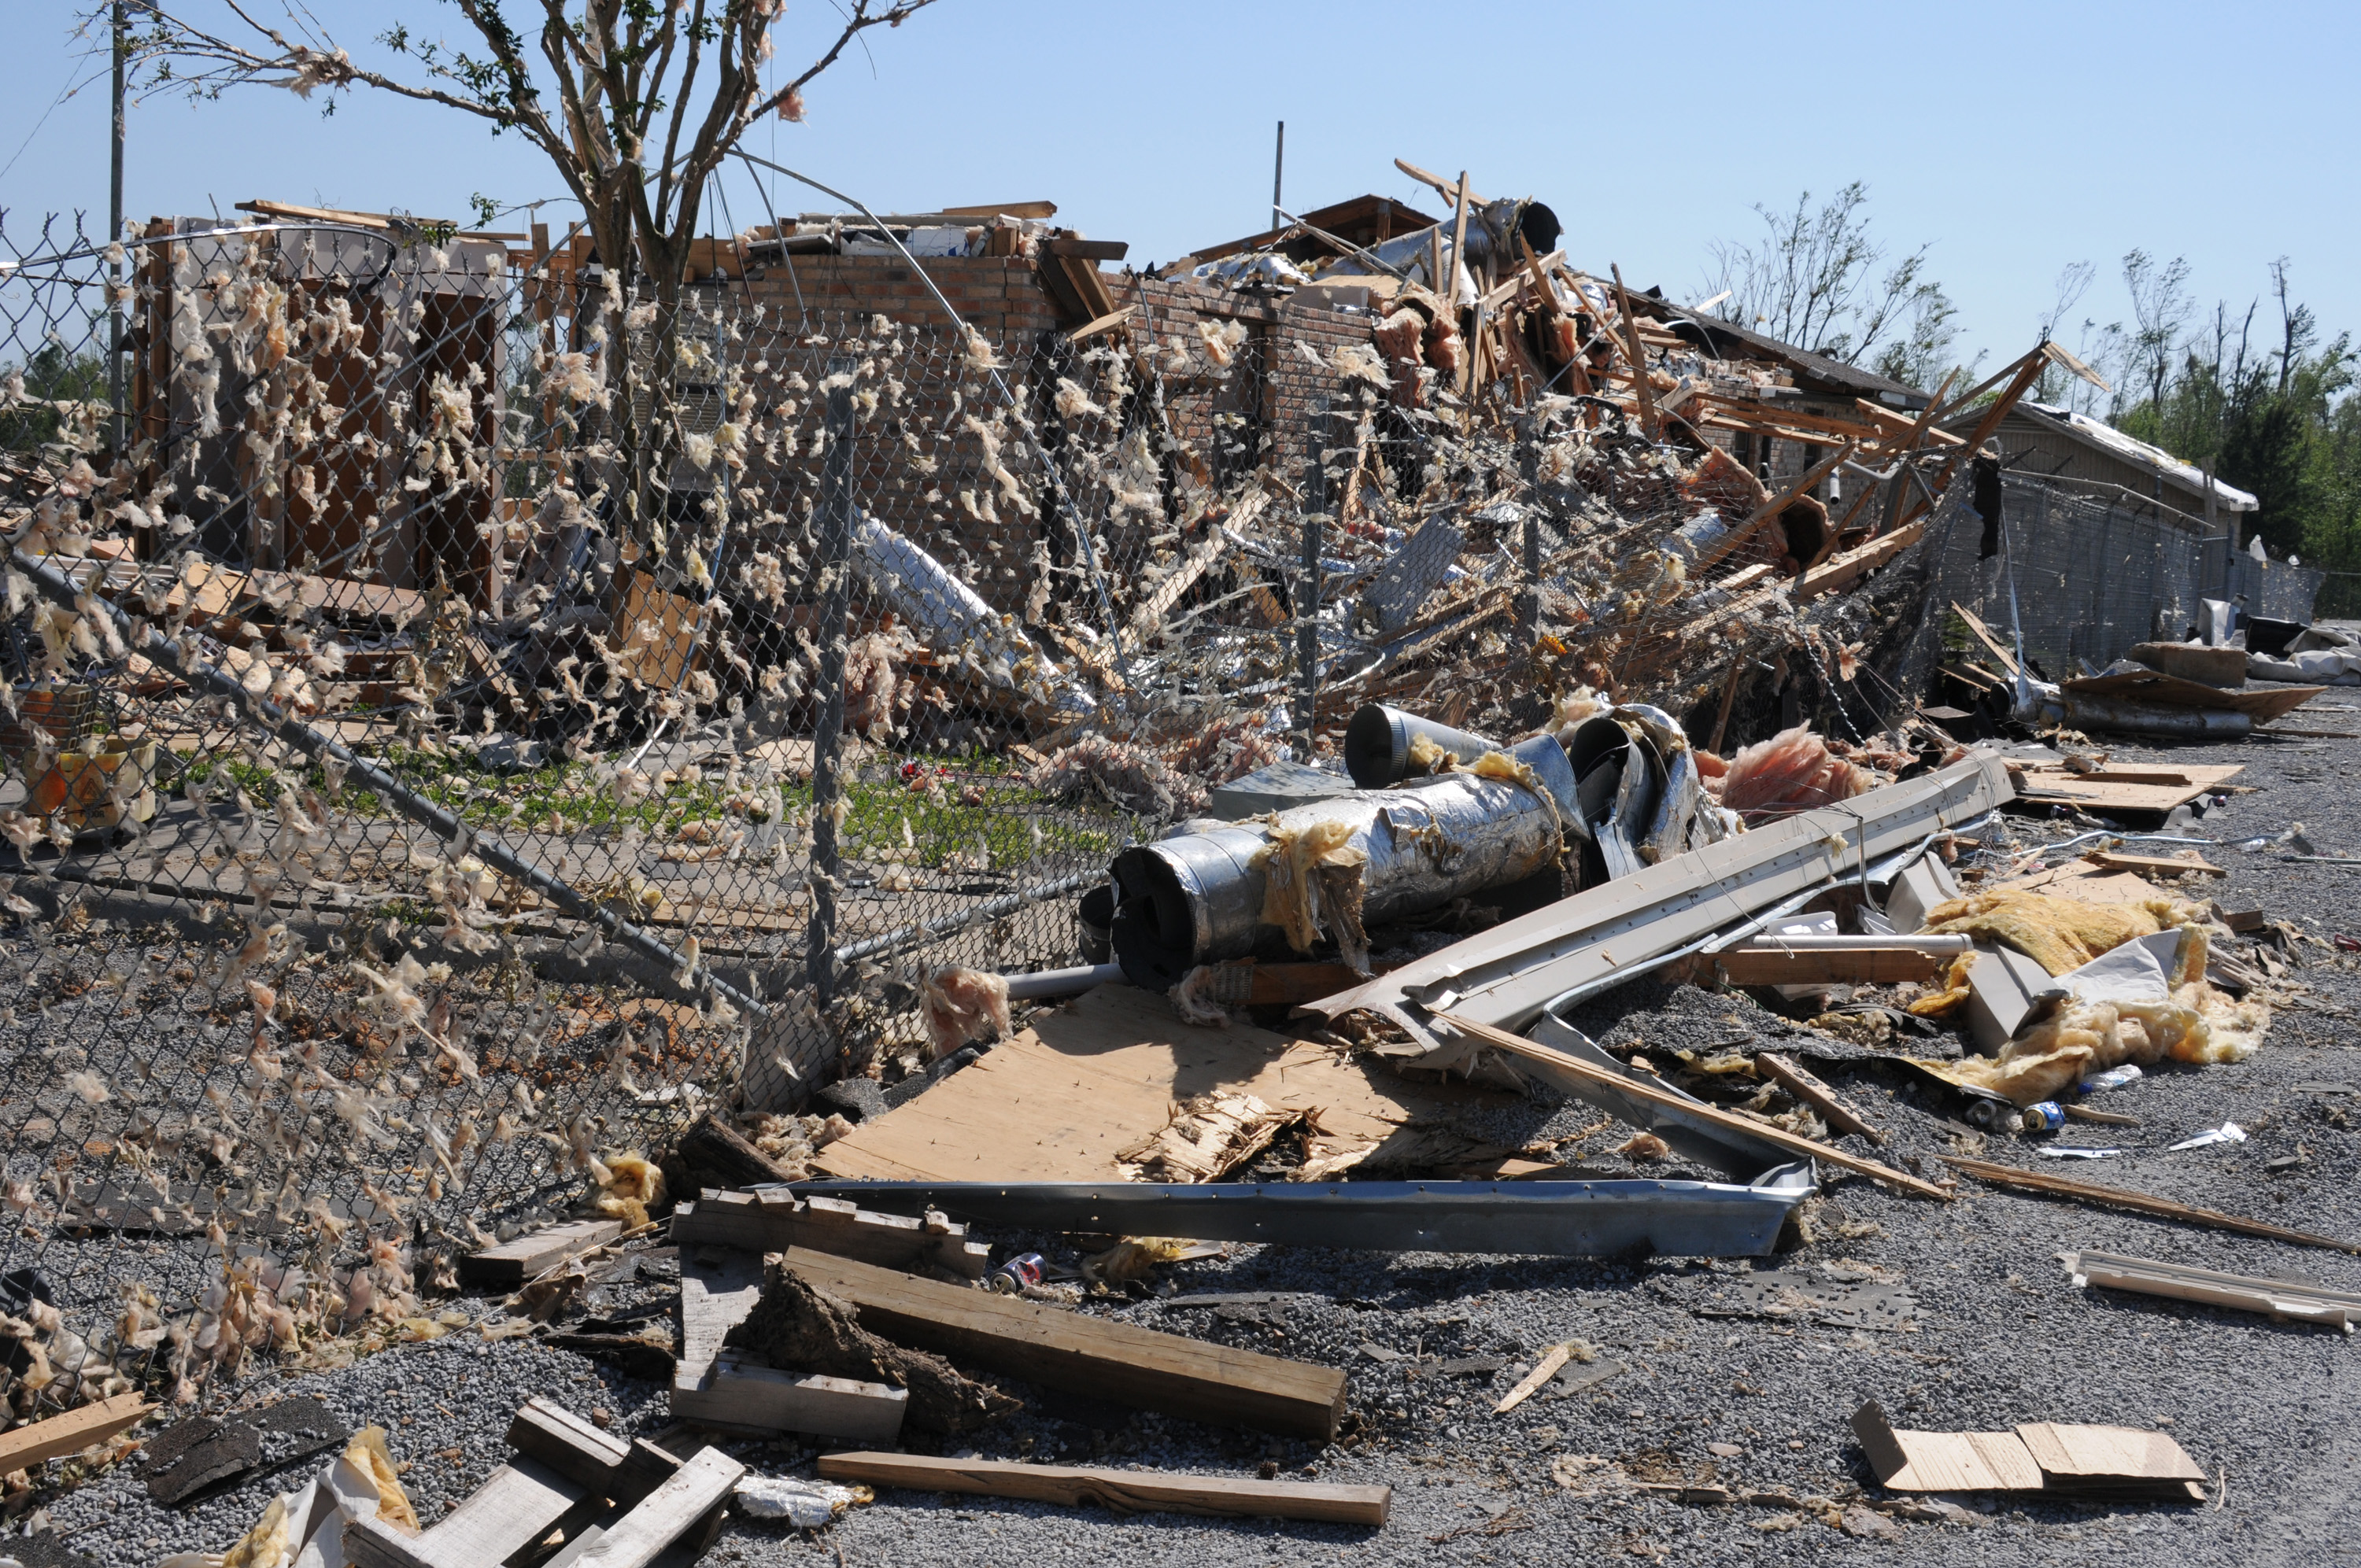 Texas Natural Disaster From